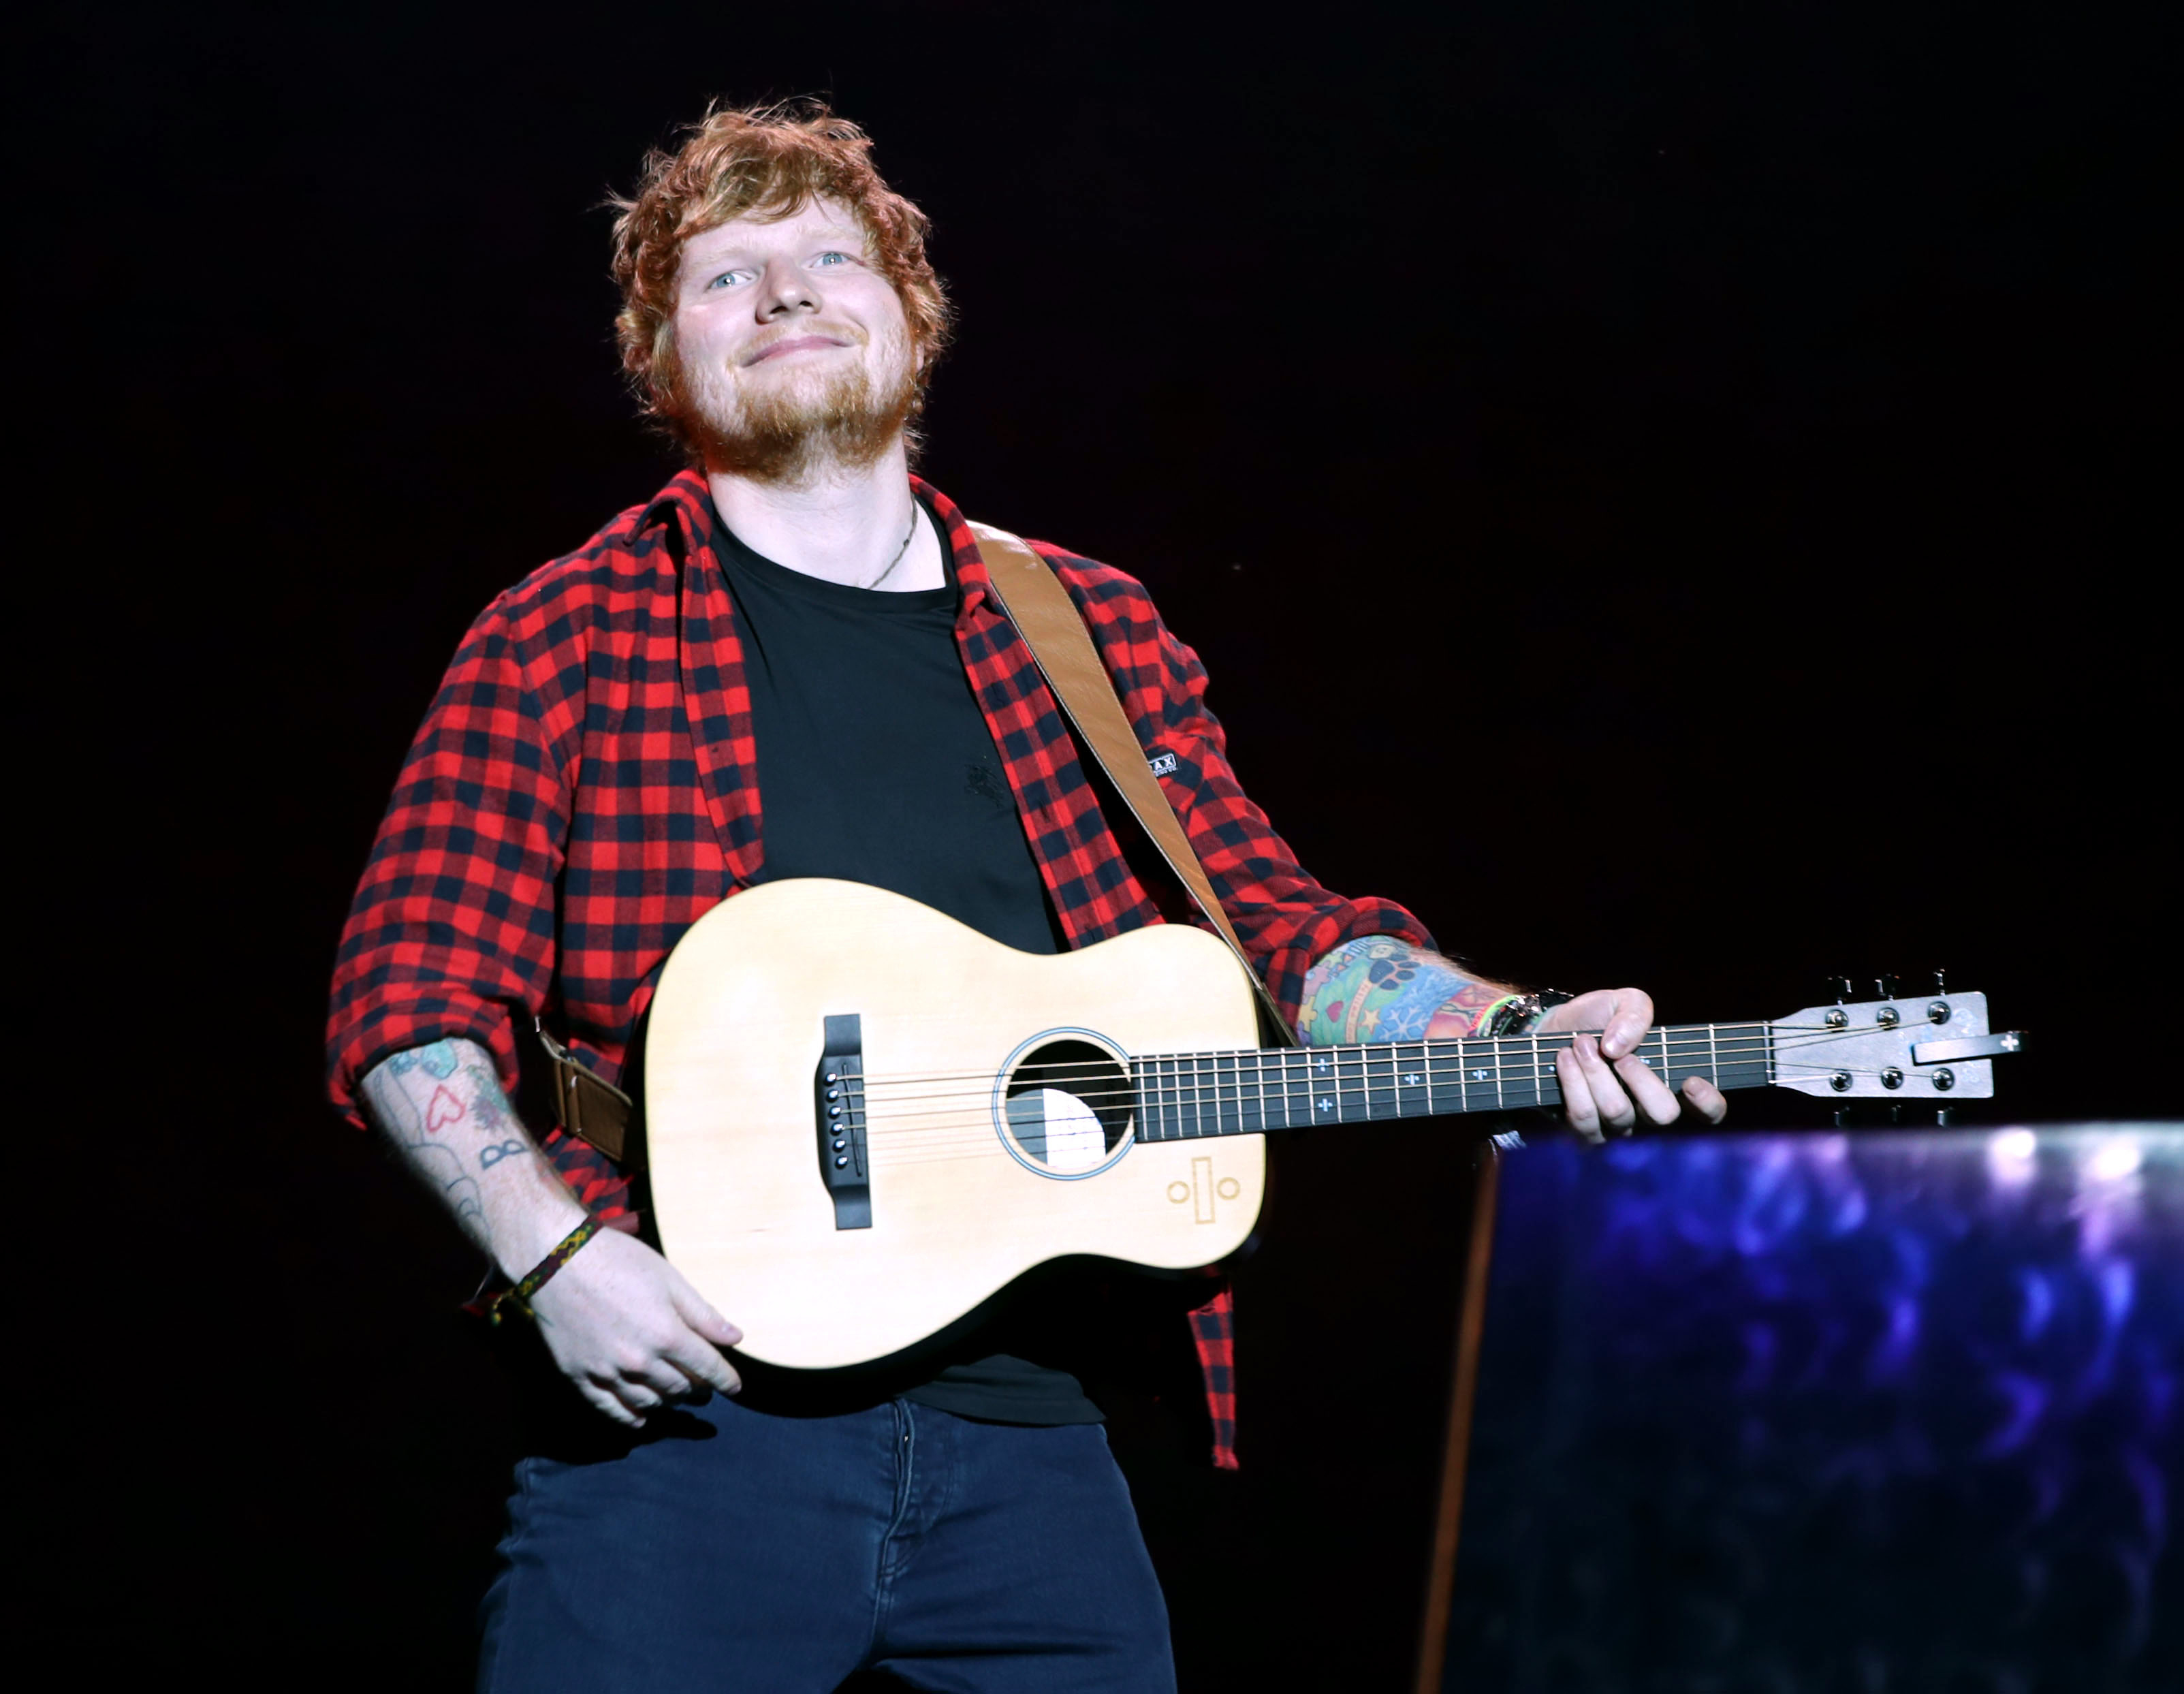 Ed Sheeran on stage